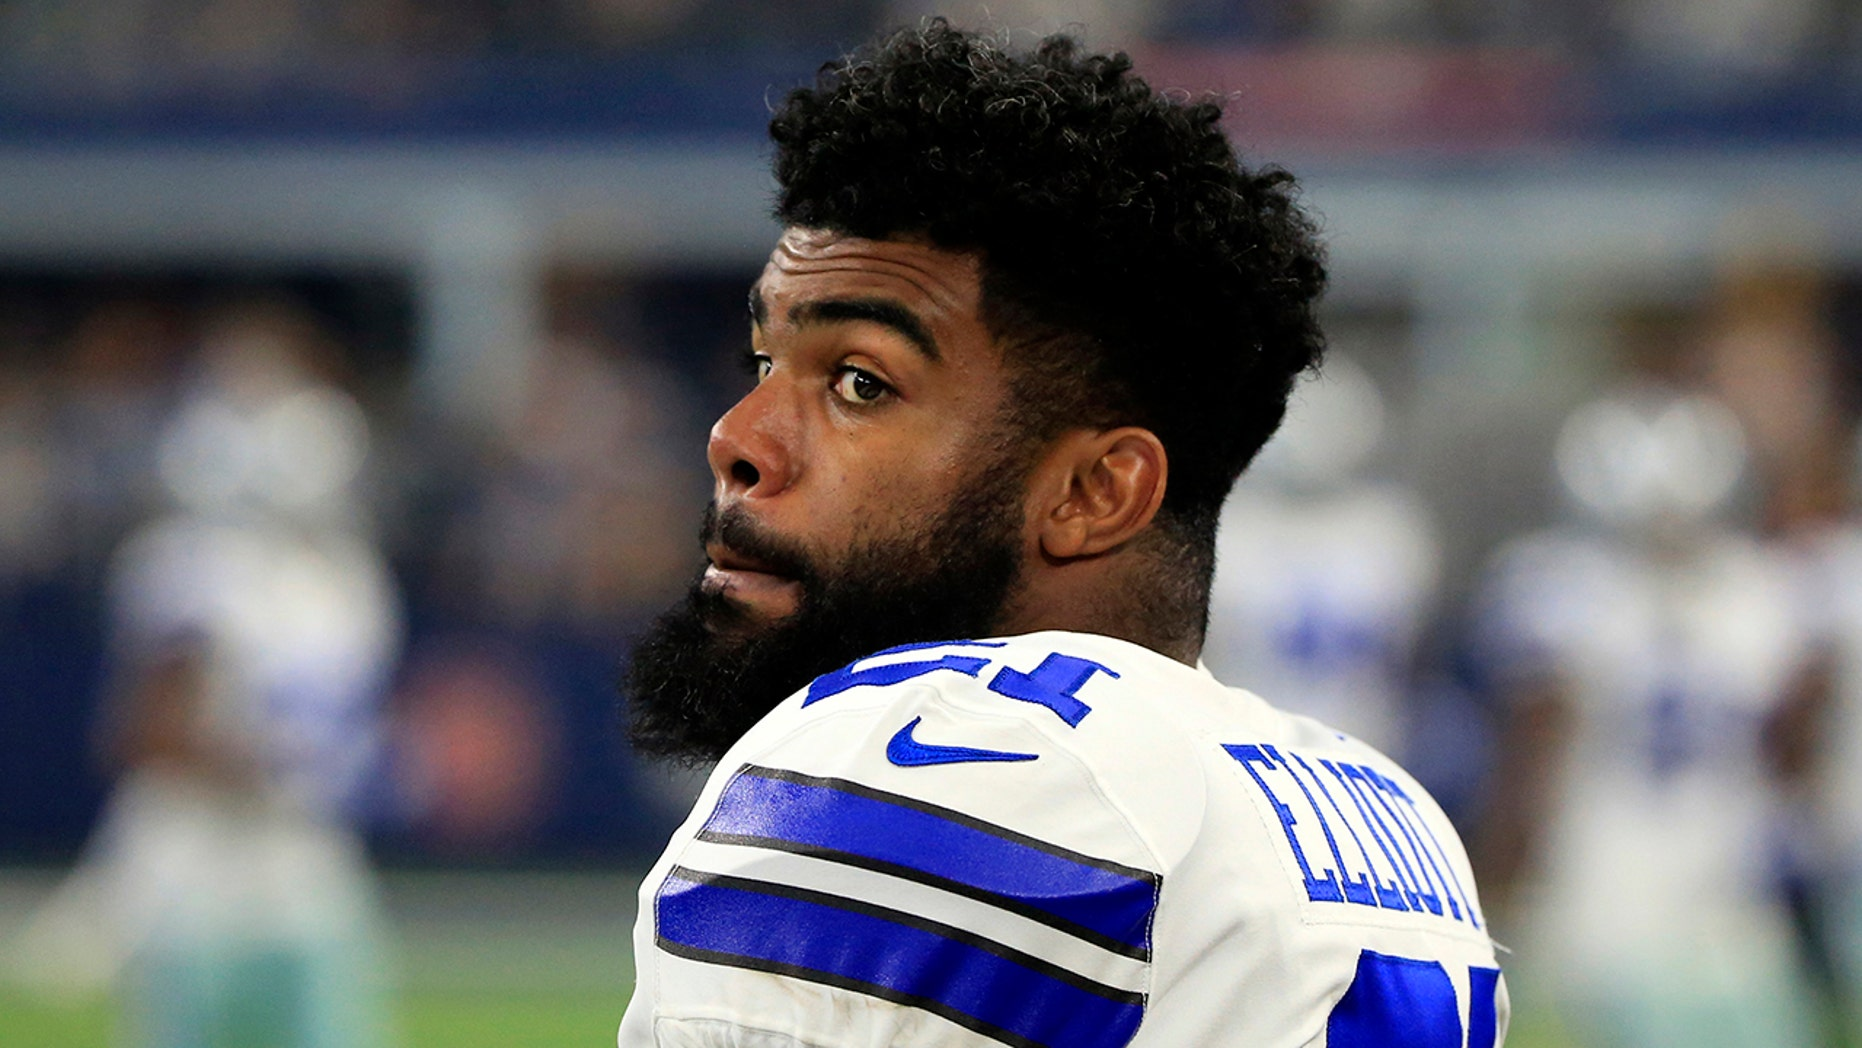 Dallas Cowboys NFL football star Ezekiel Elliott, 22, has dropped his appeal with five games remaining on his six-game suspension over alleged domestic violence. (The Associated Press)